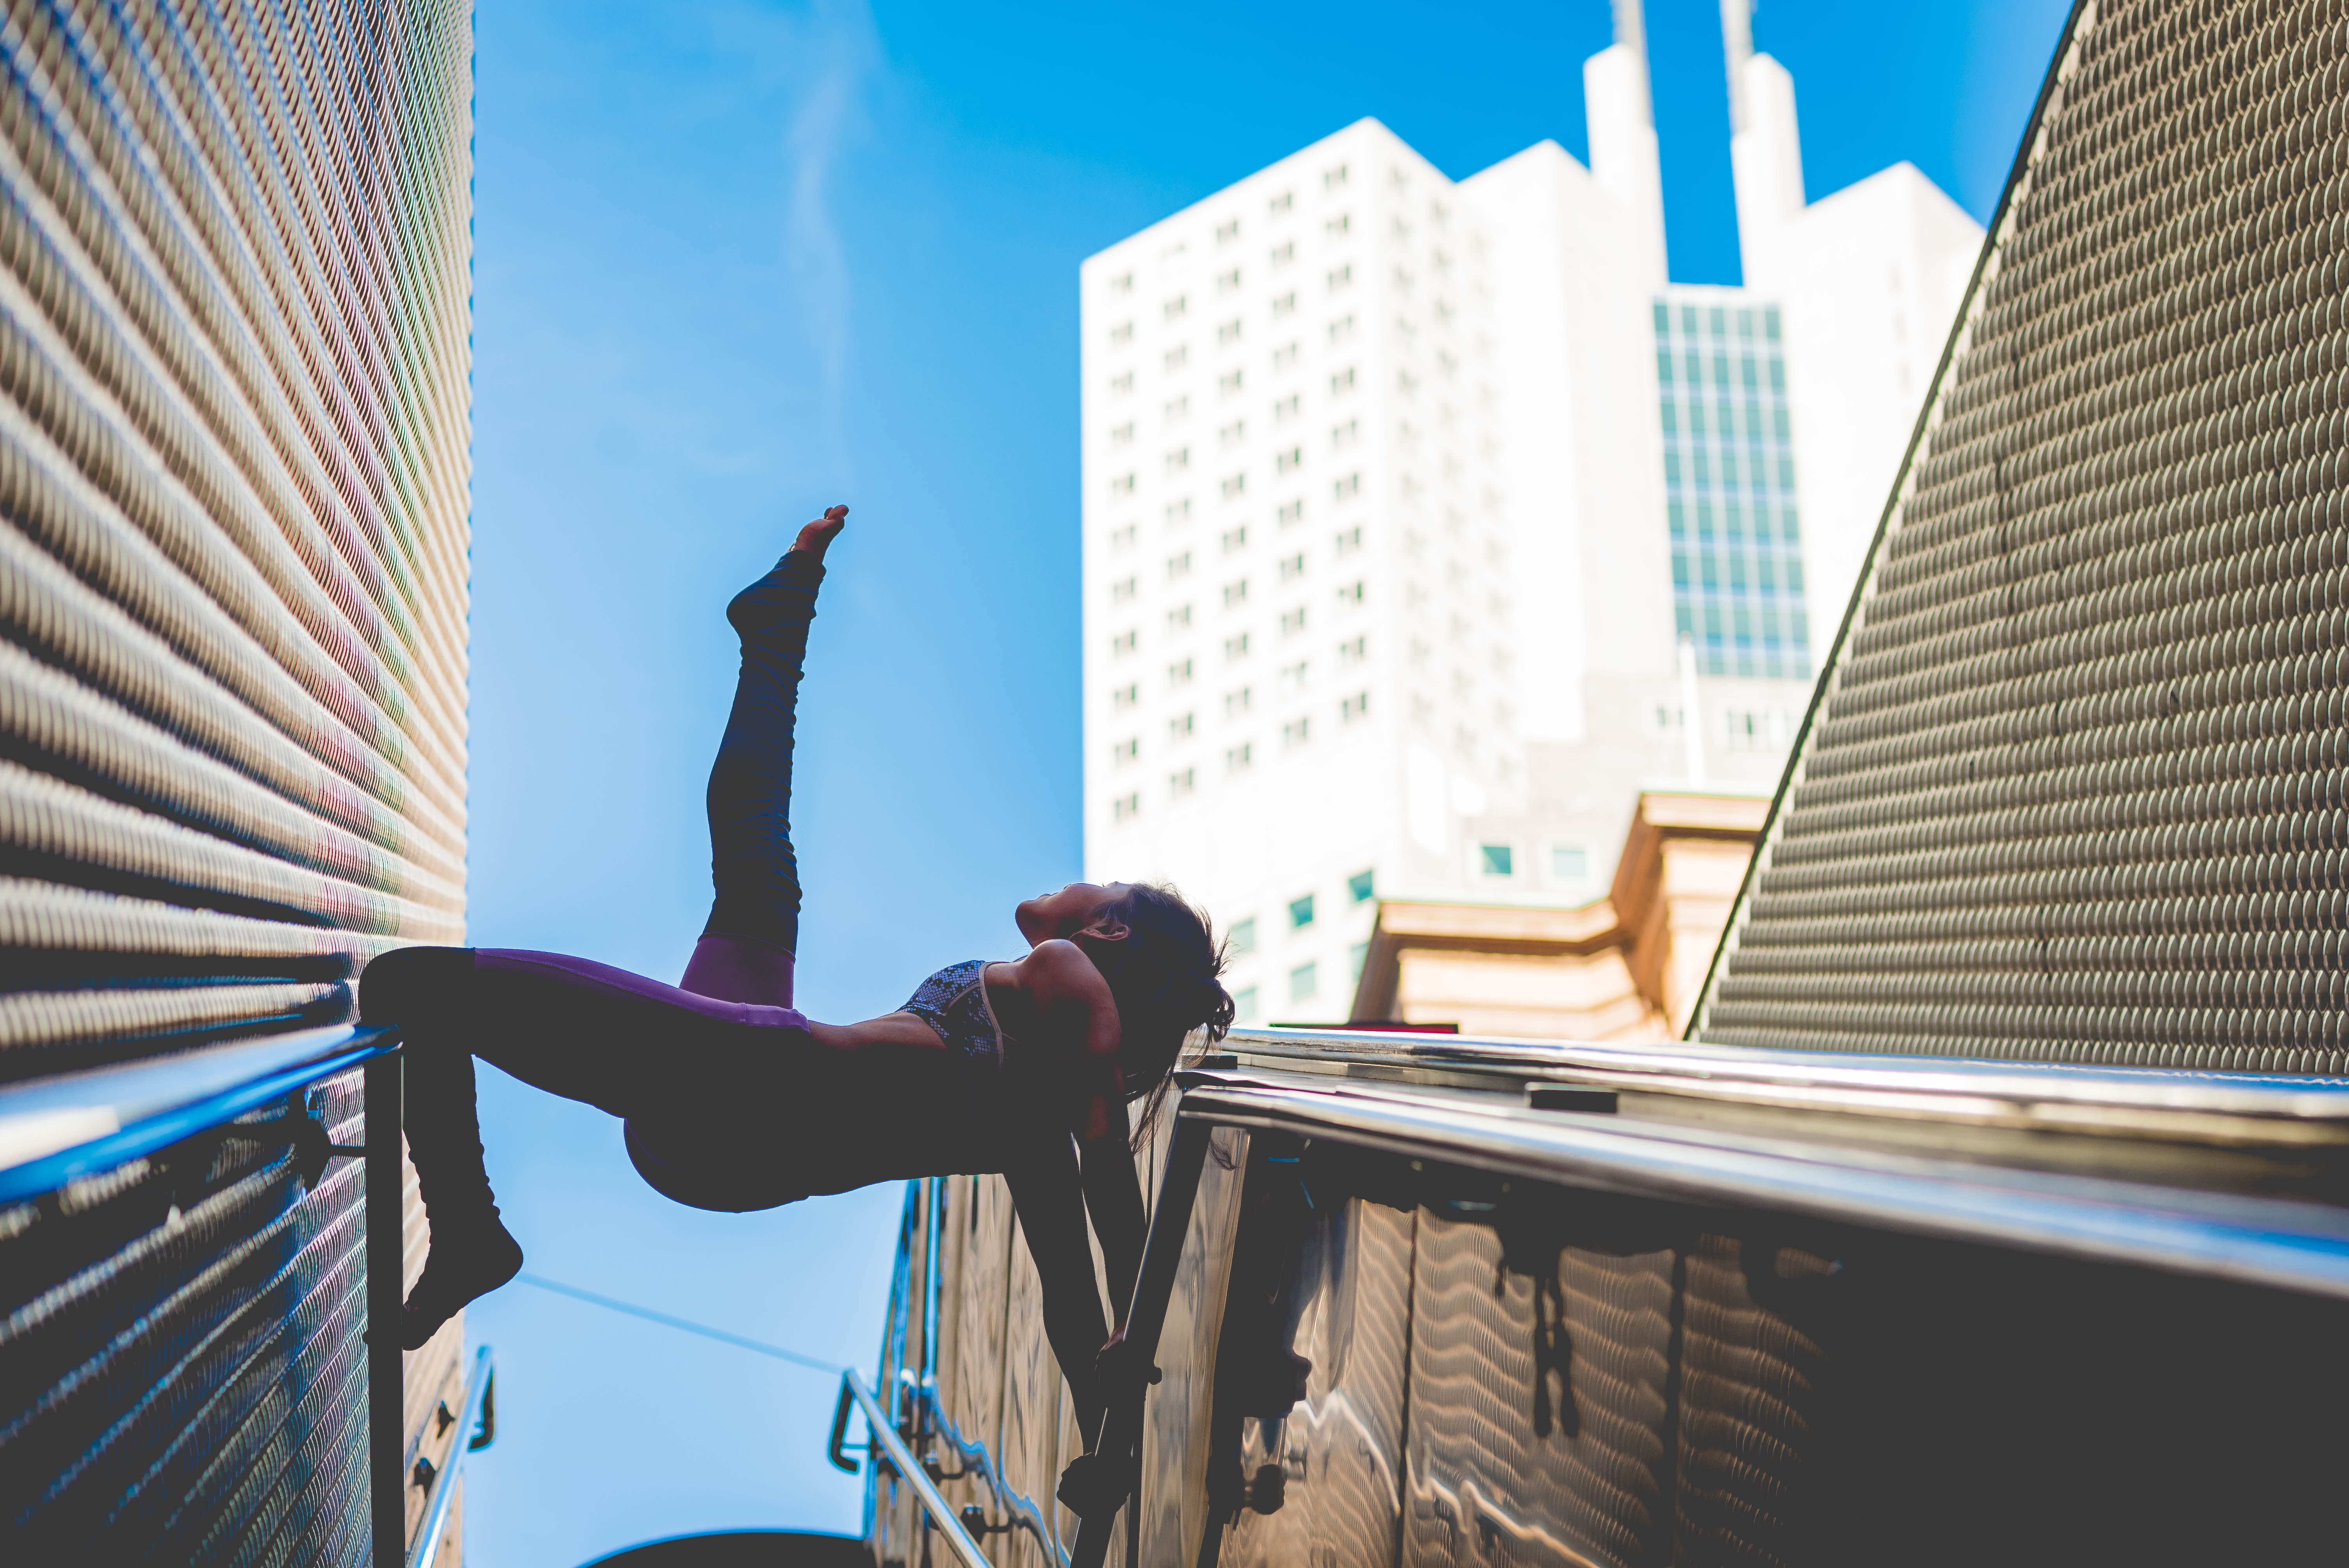 YOGA SAVED MY LIFE – Recovering from Anorexia